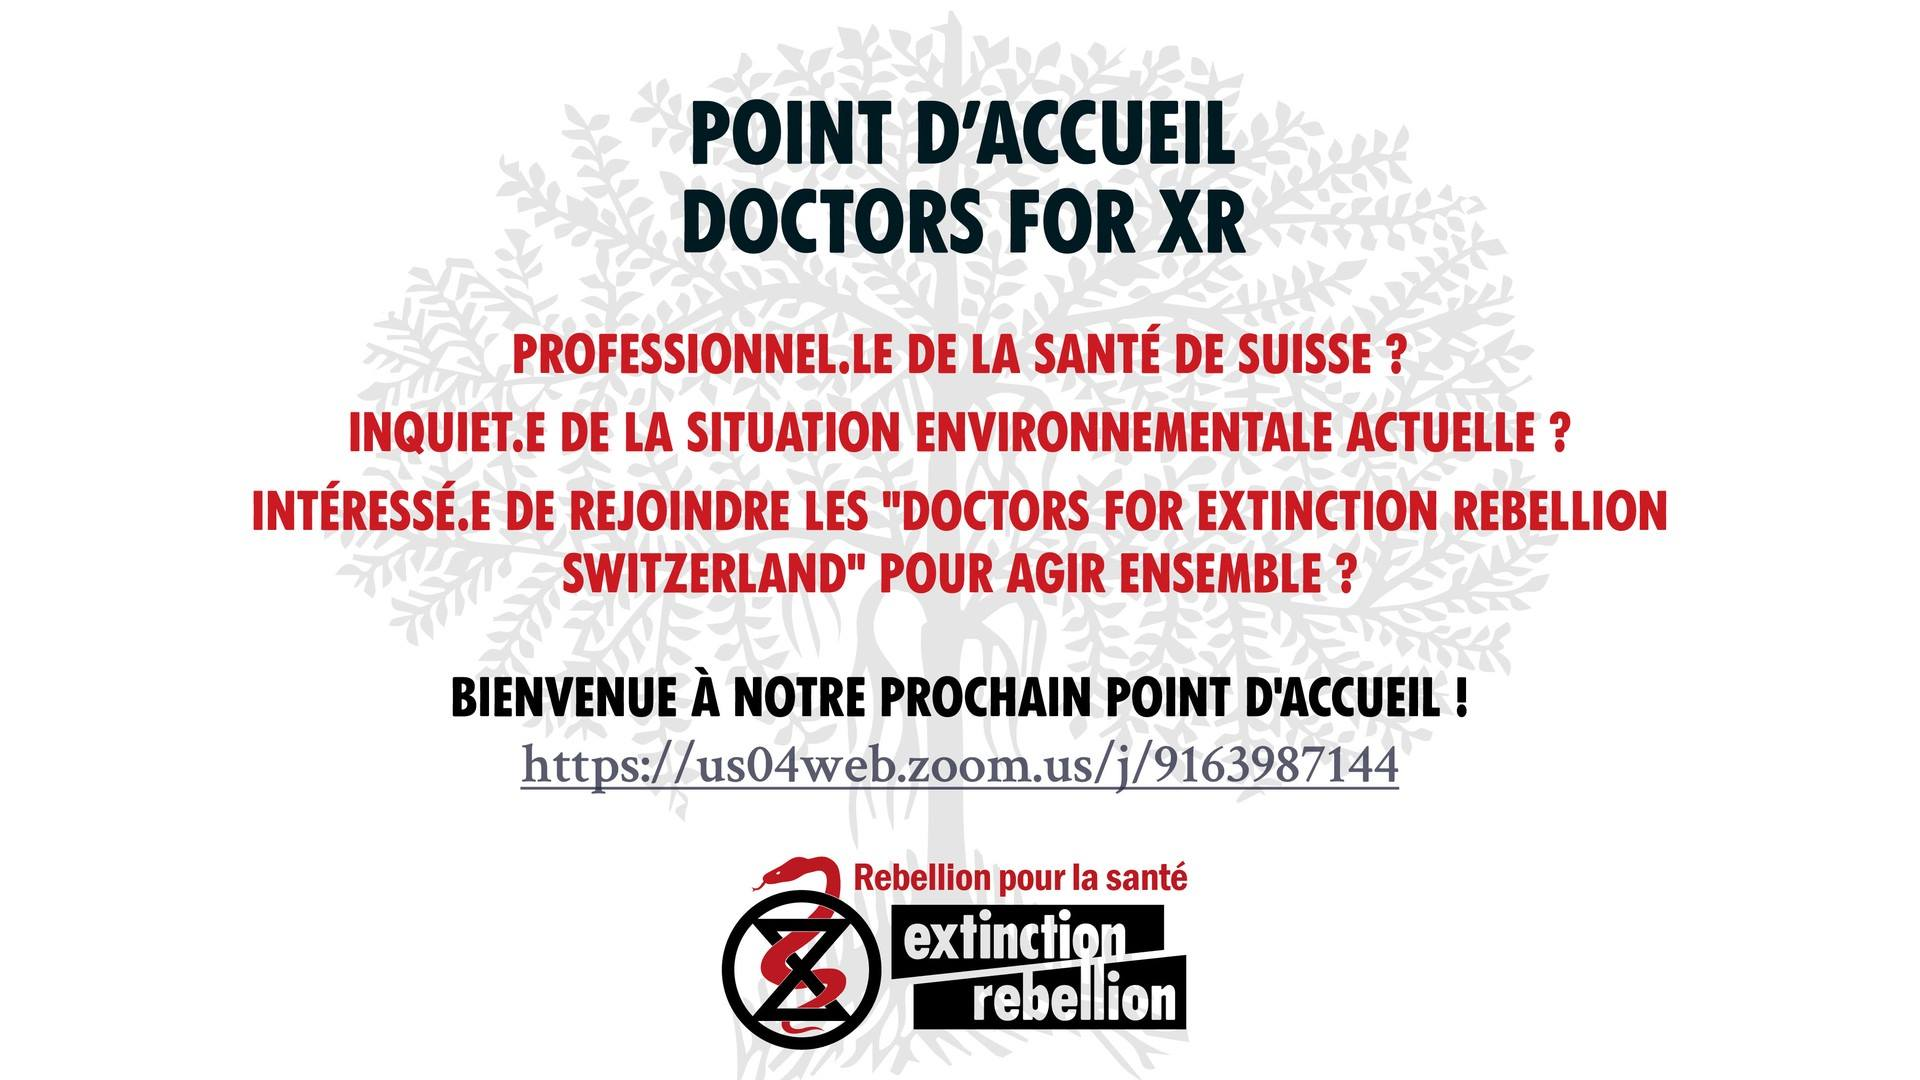 Doctors For XR – Point d'accueil